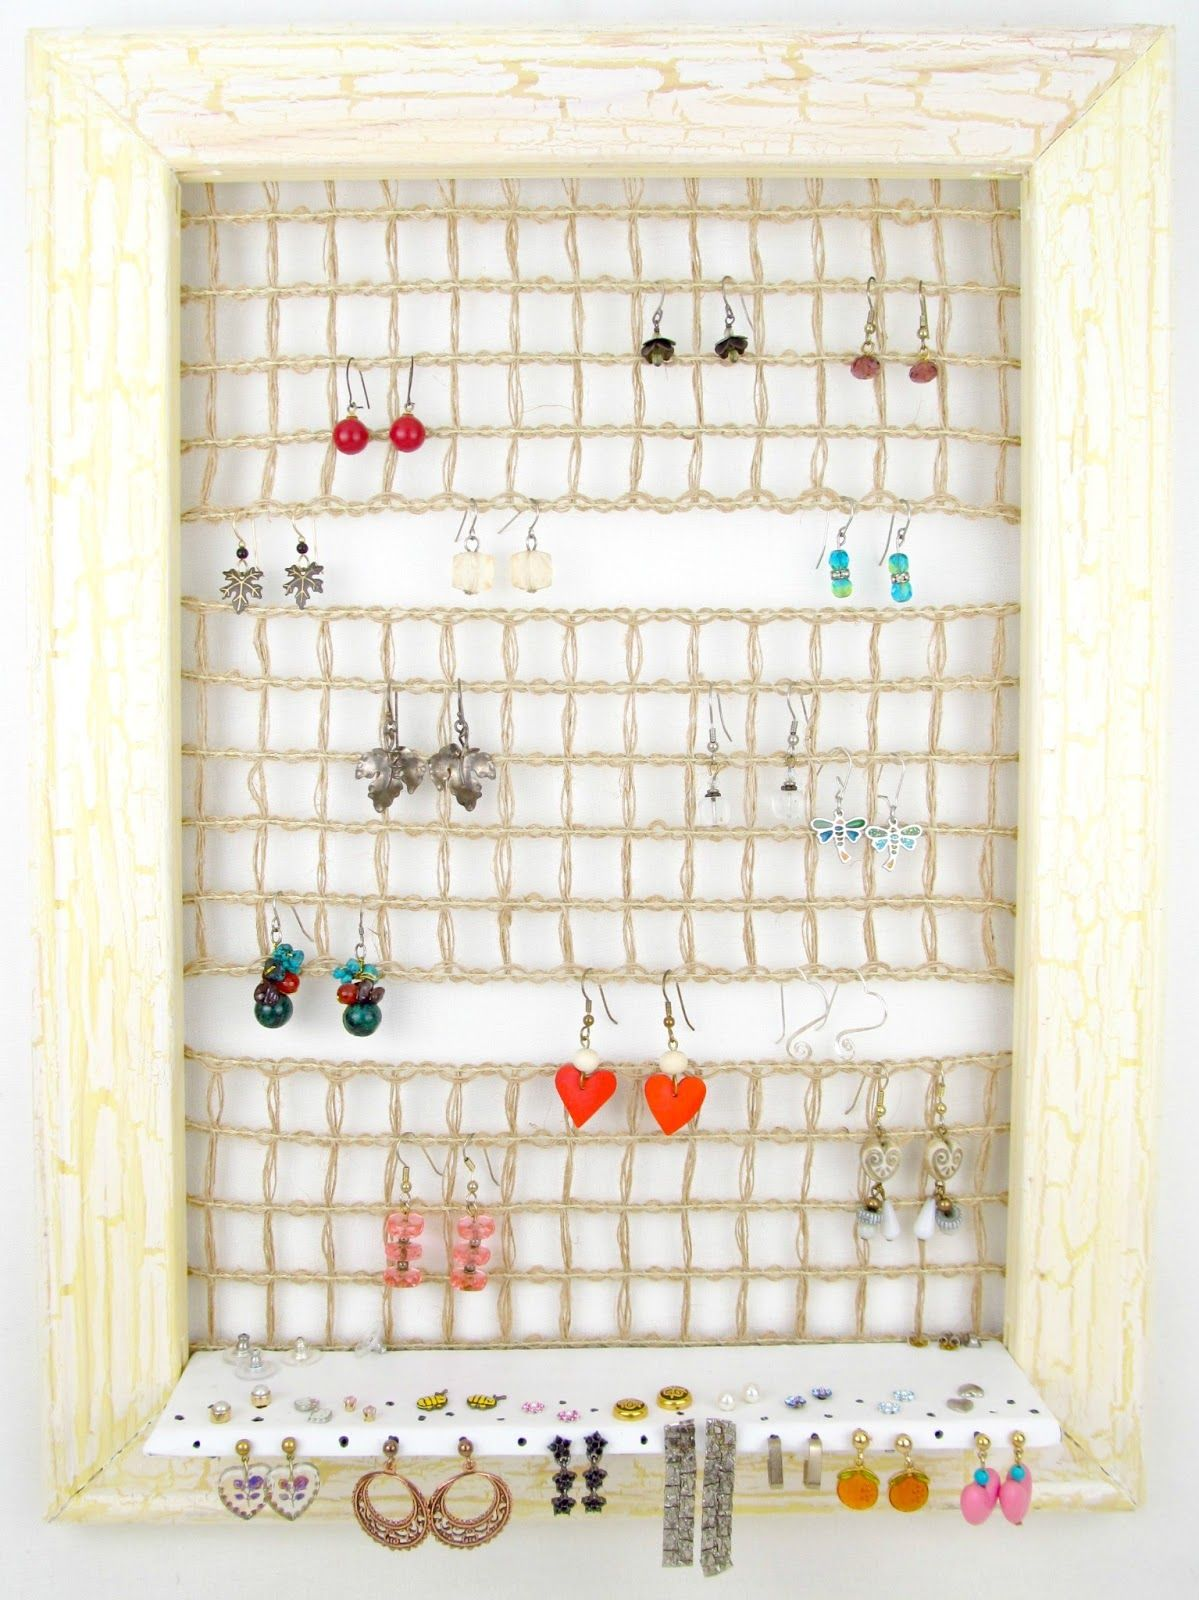 Wall Hanging Jewelry Holder Hanging Jewelry Wall Hanging Diy